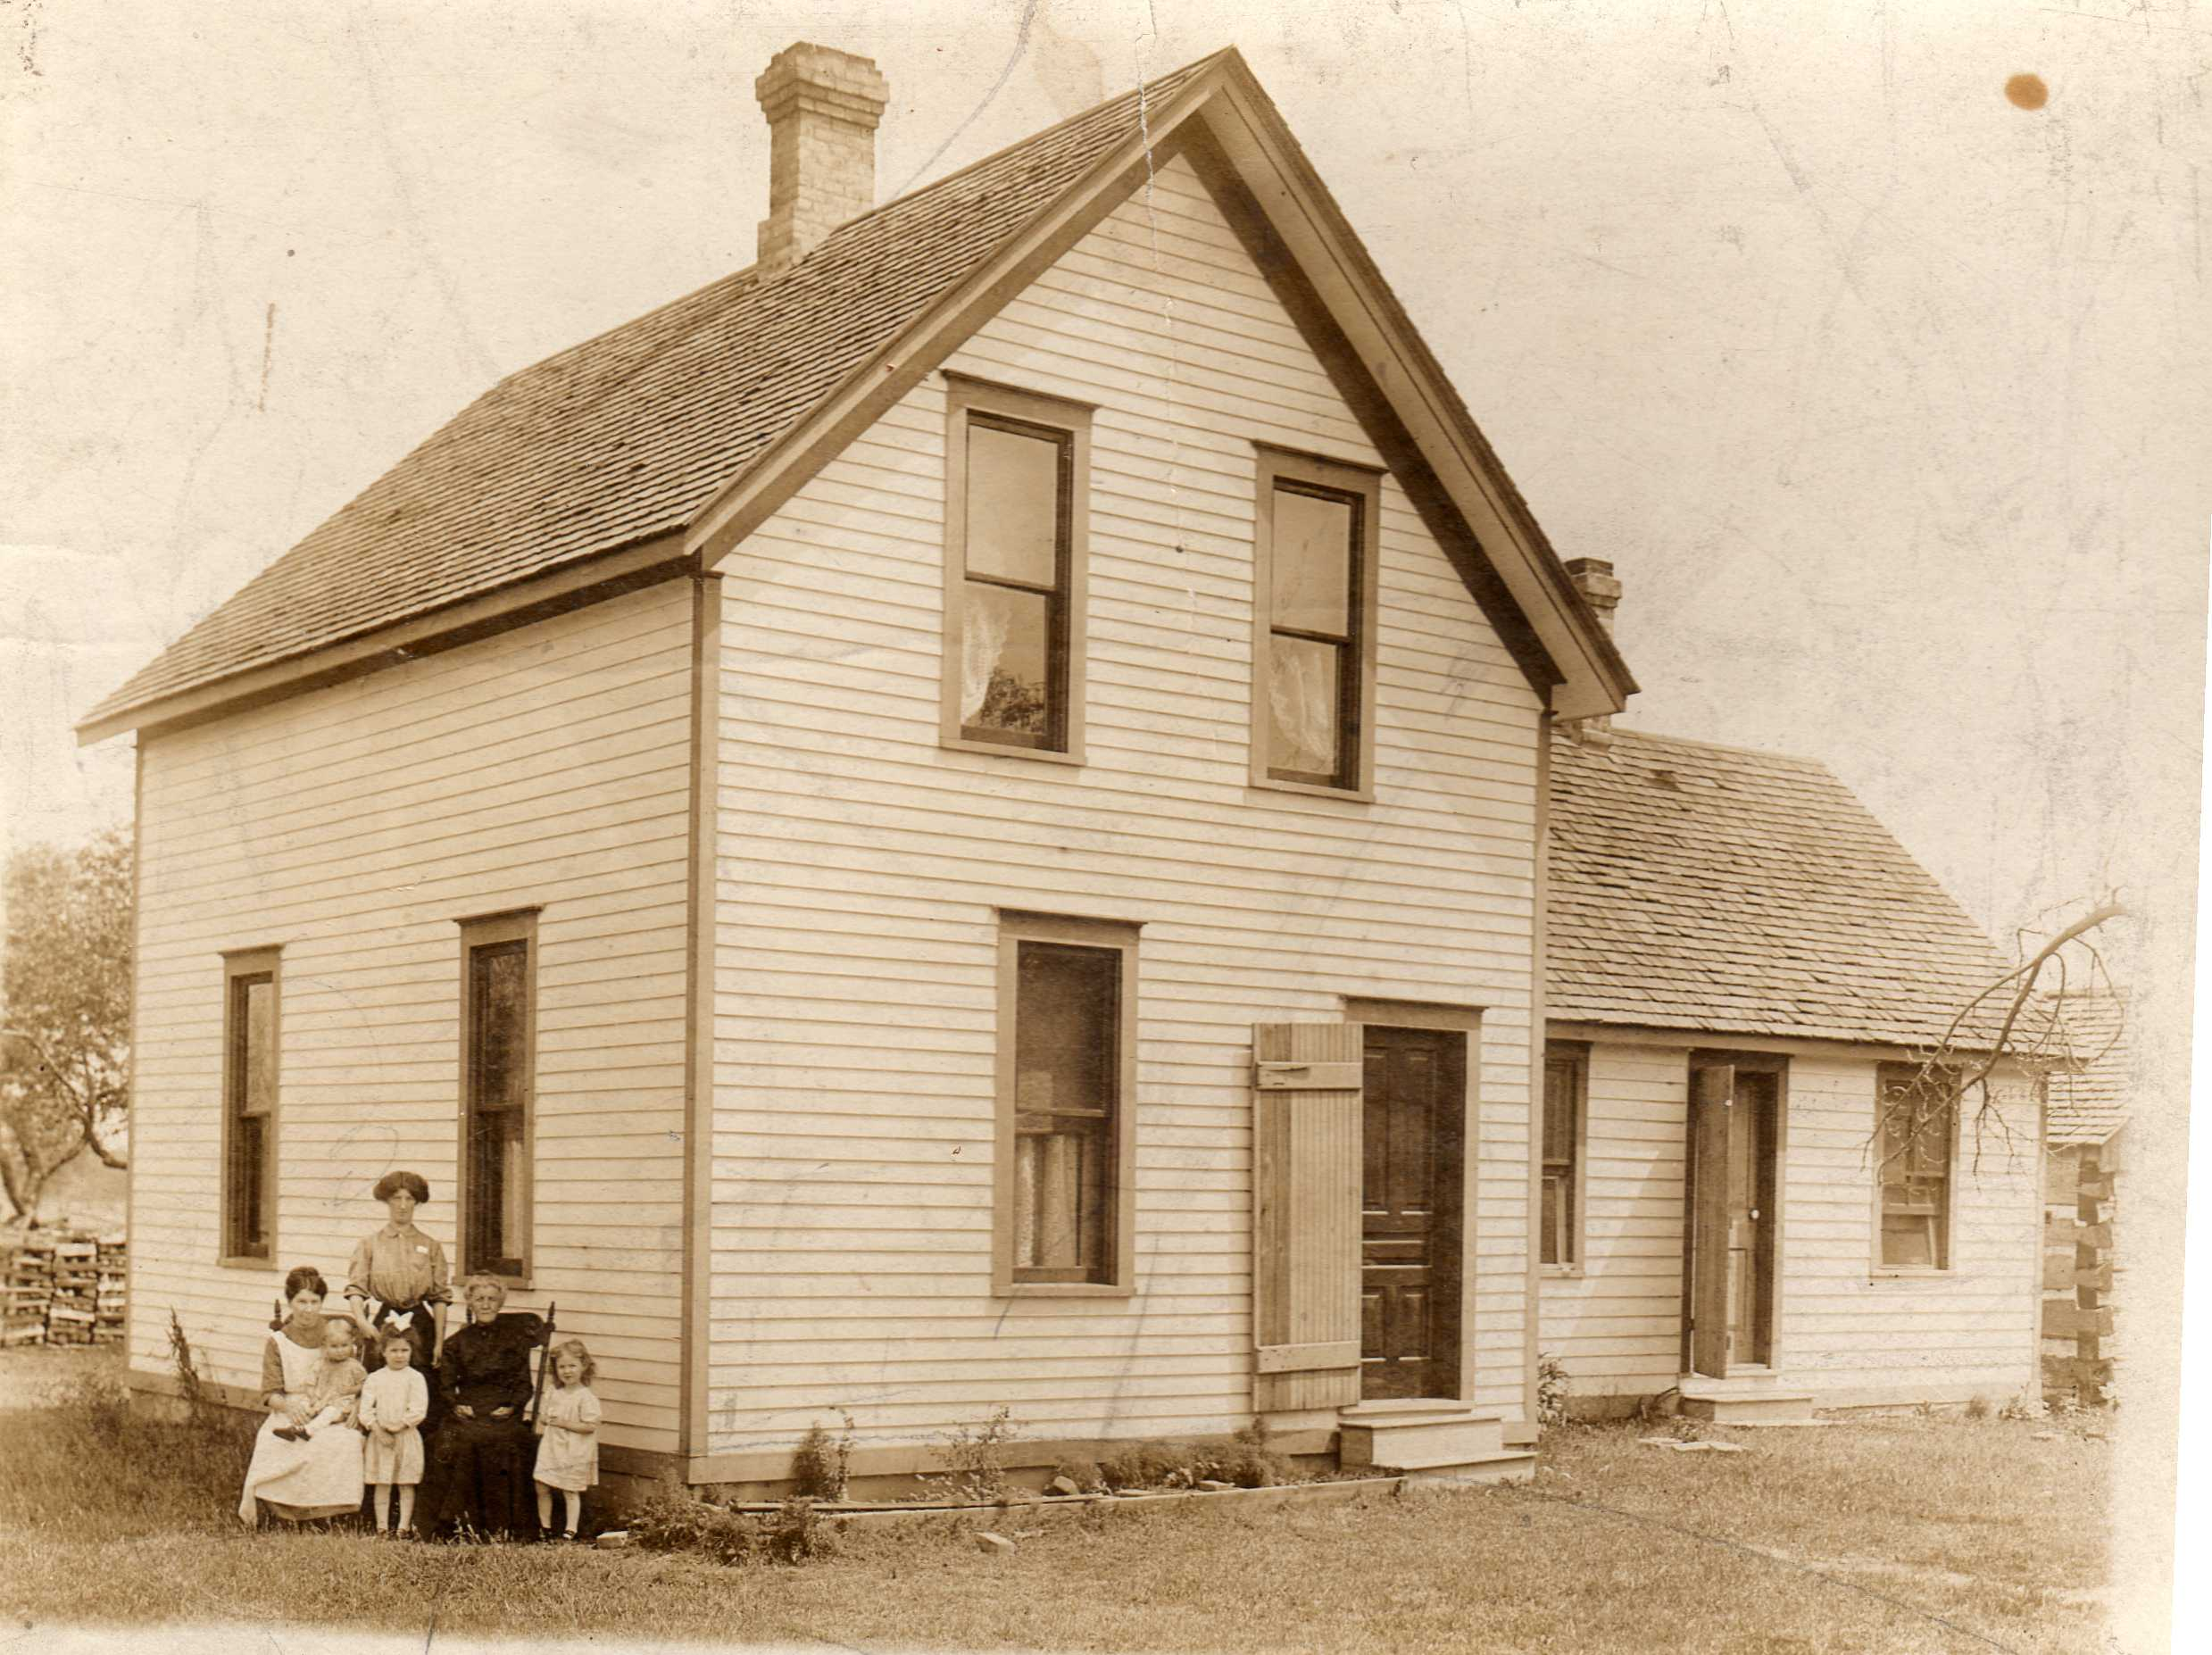 The Homeplace circa 1915